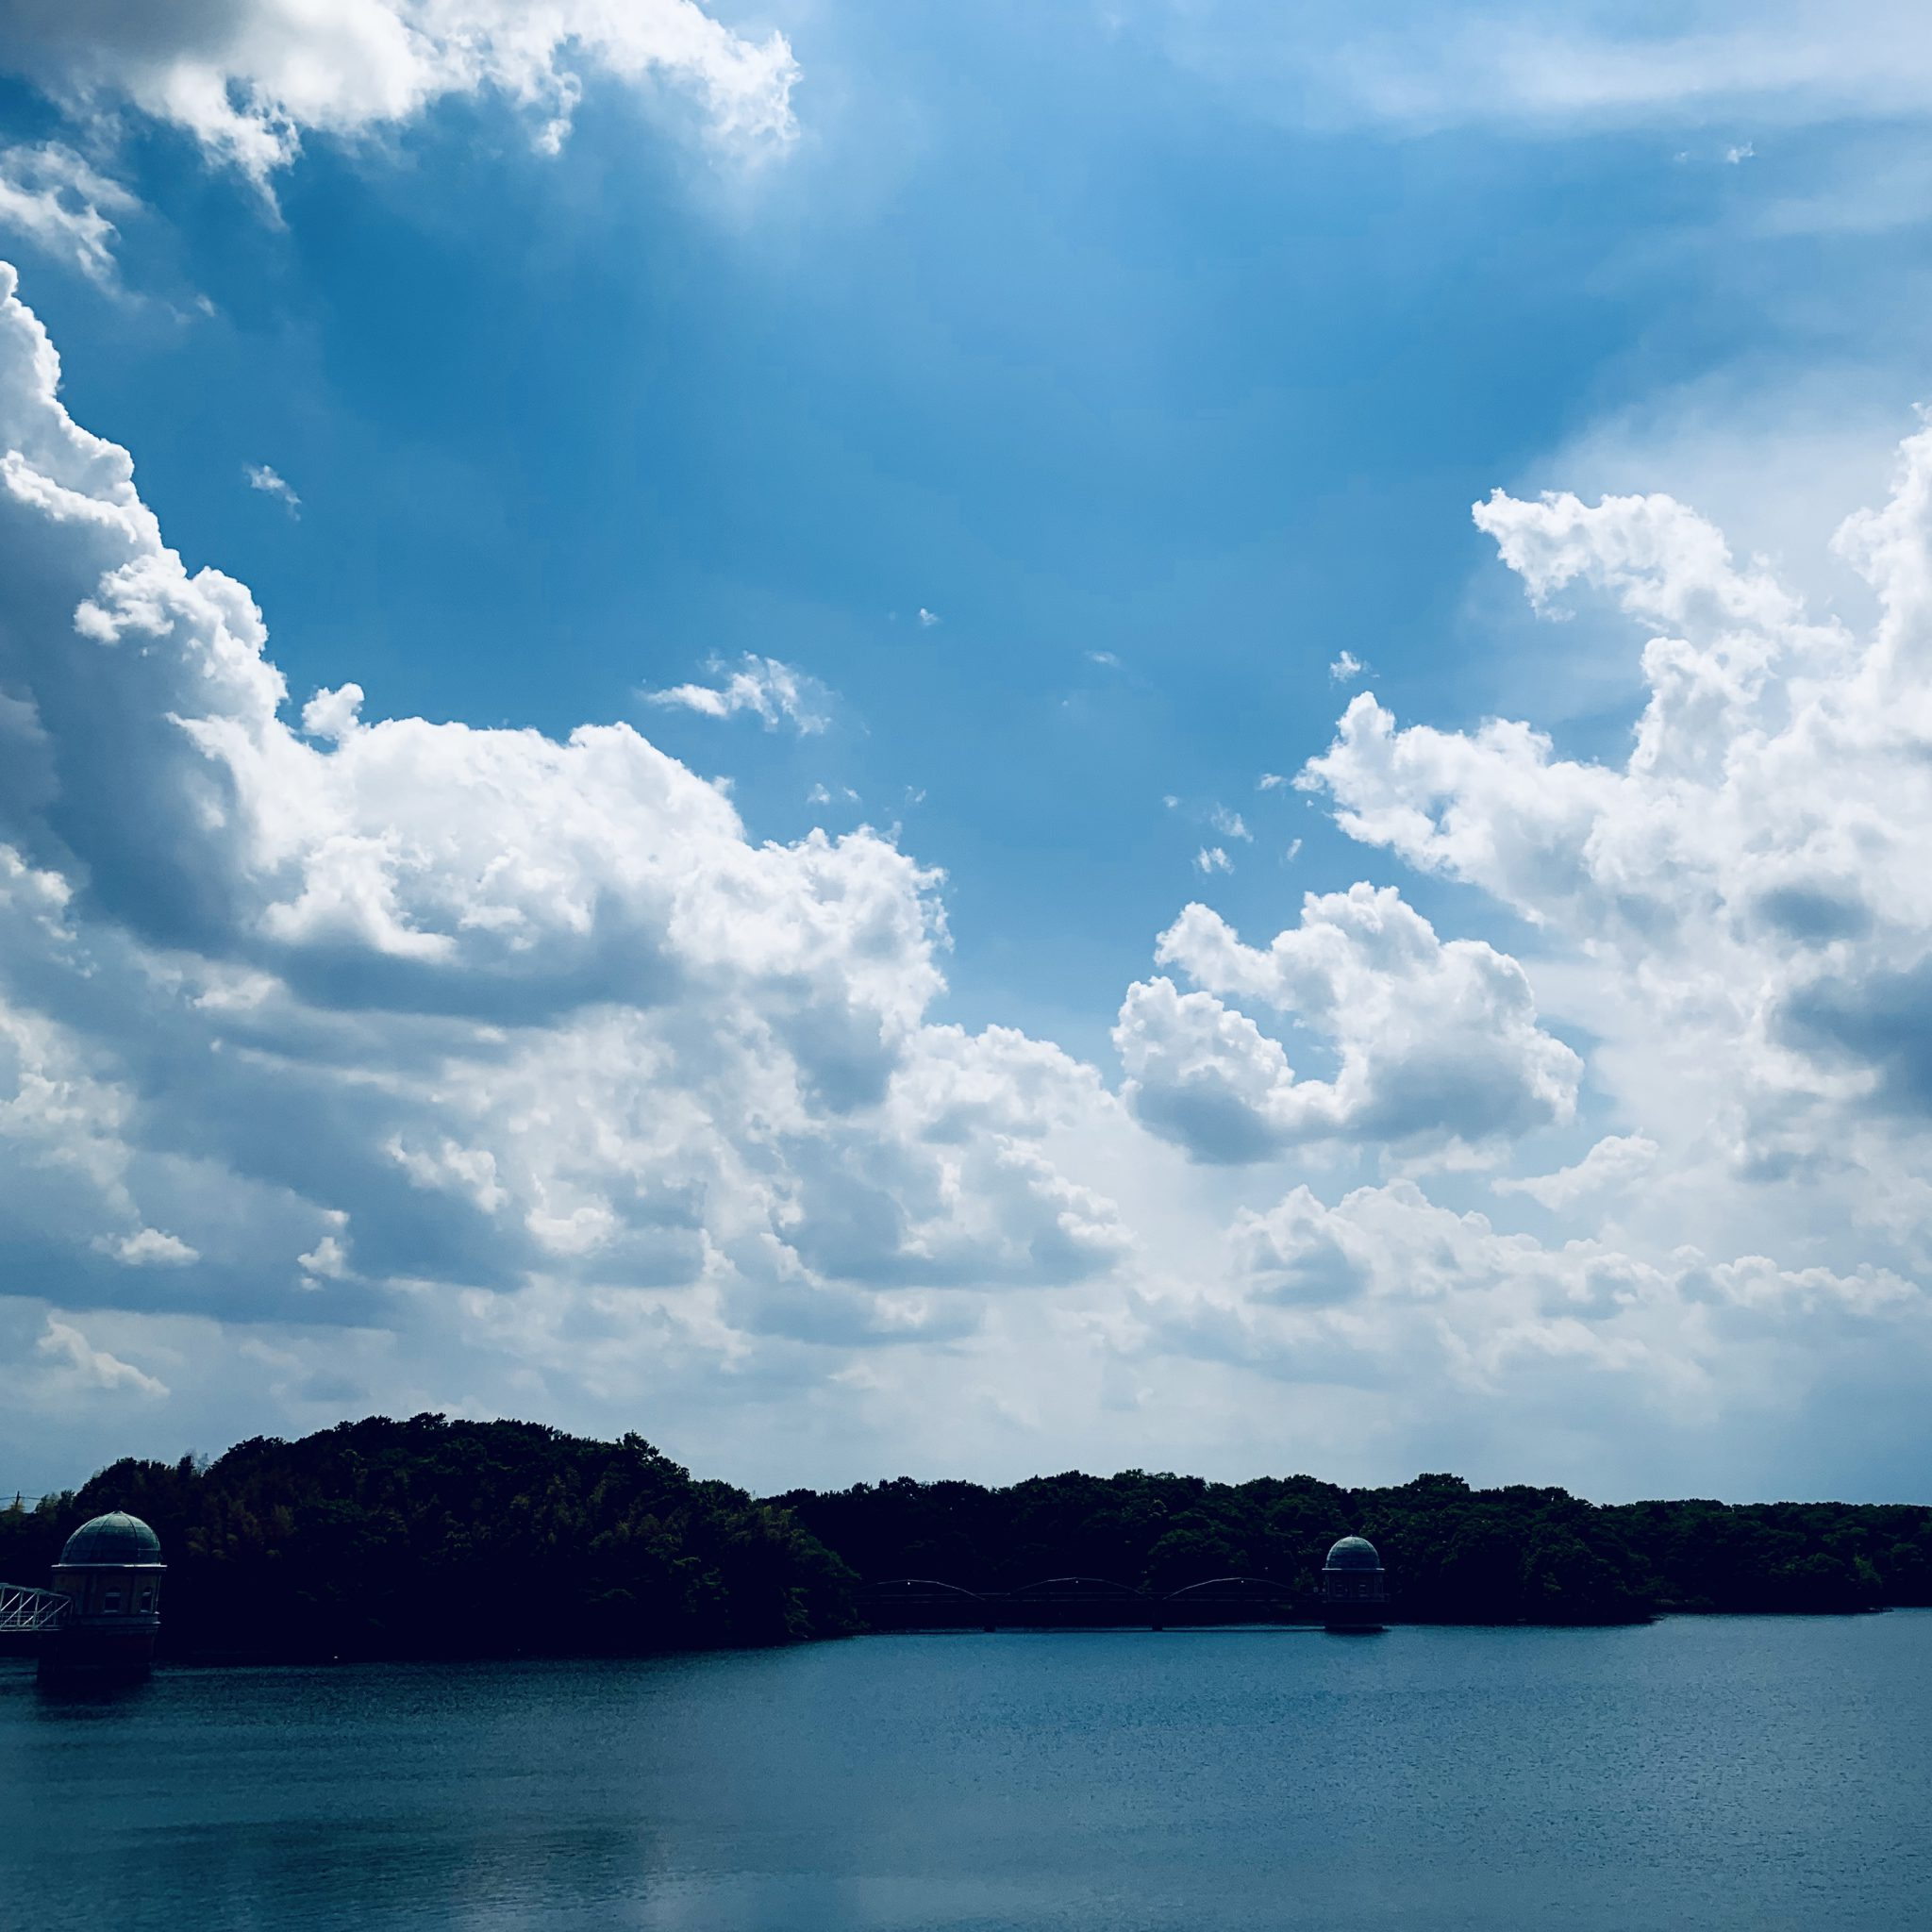 Tokyo ON In the Mix: Summertime Magic - Lake Sayama